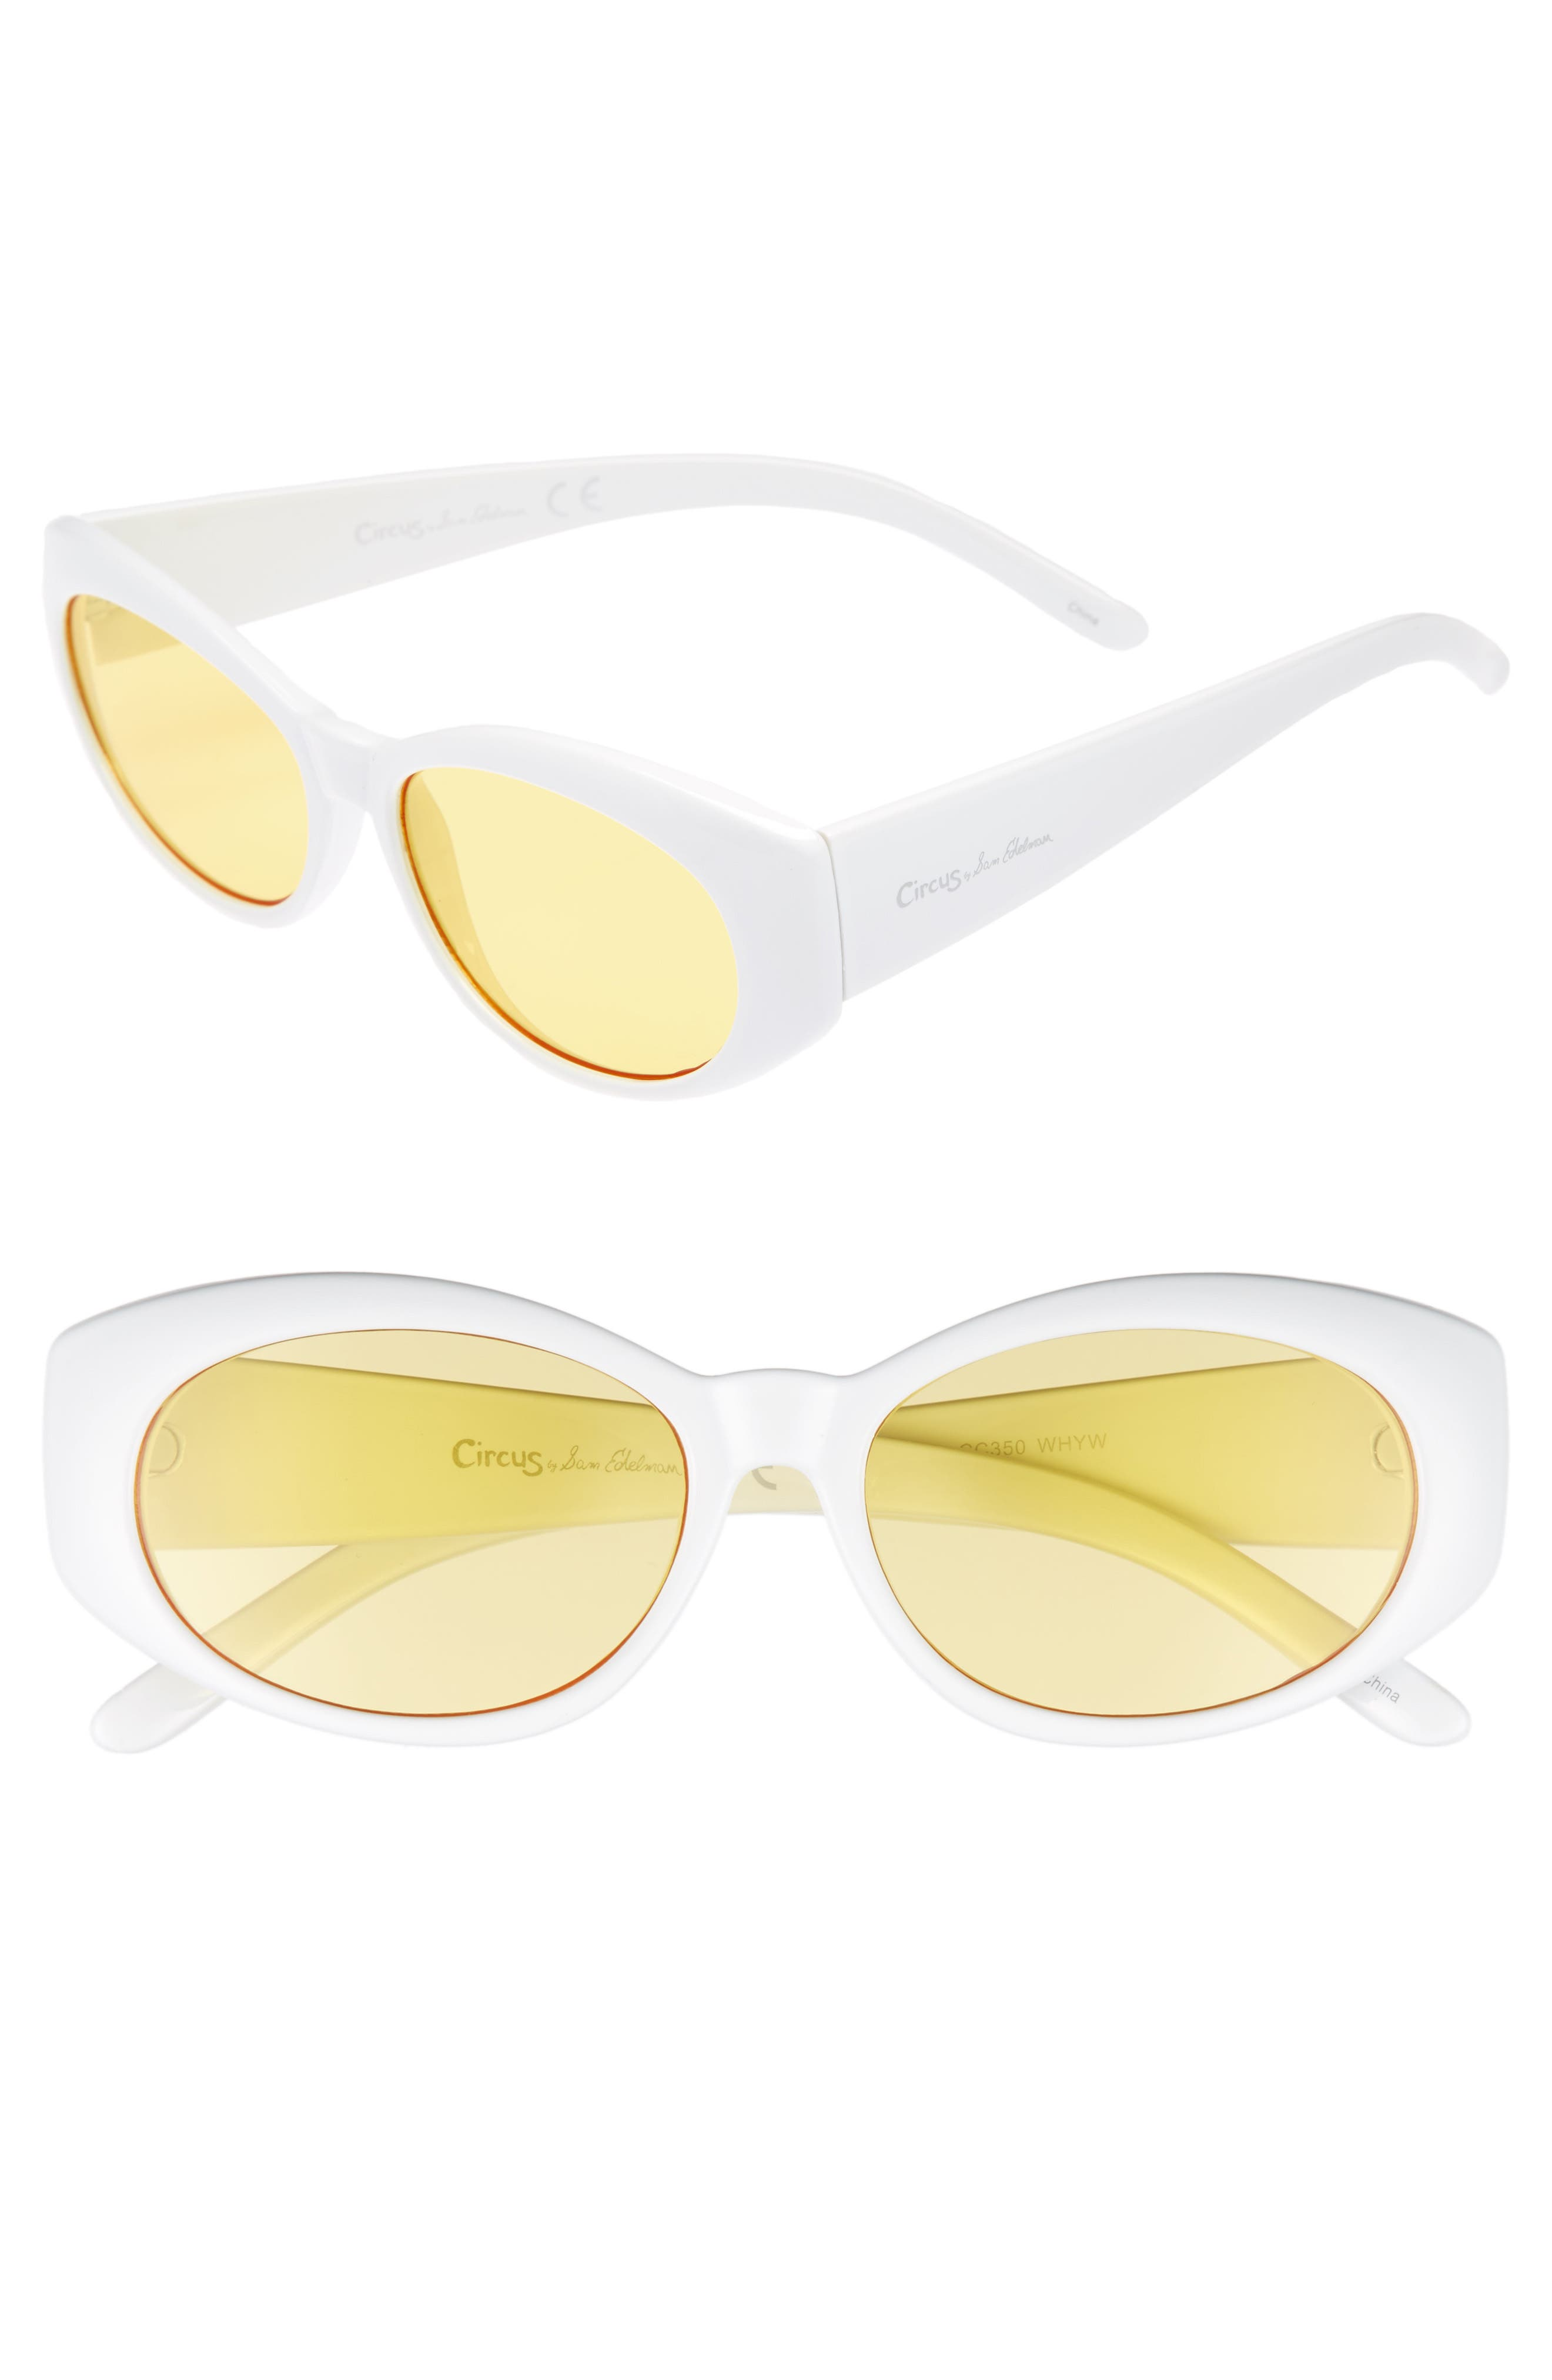 68mm Oval Sunglasses,                         Main,                         color, White/ Yellow Lens